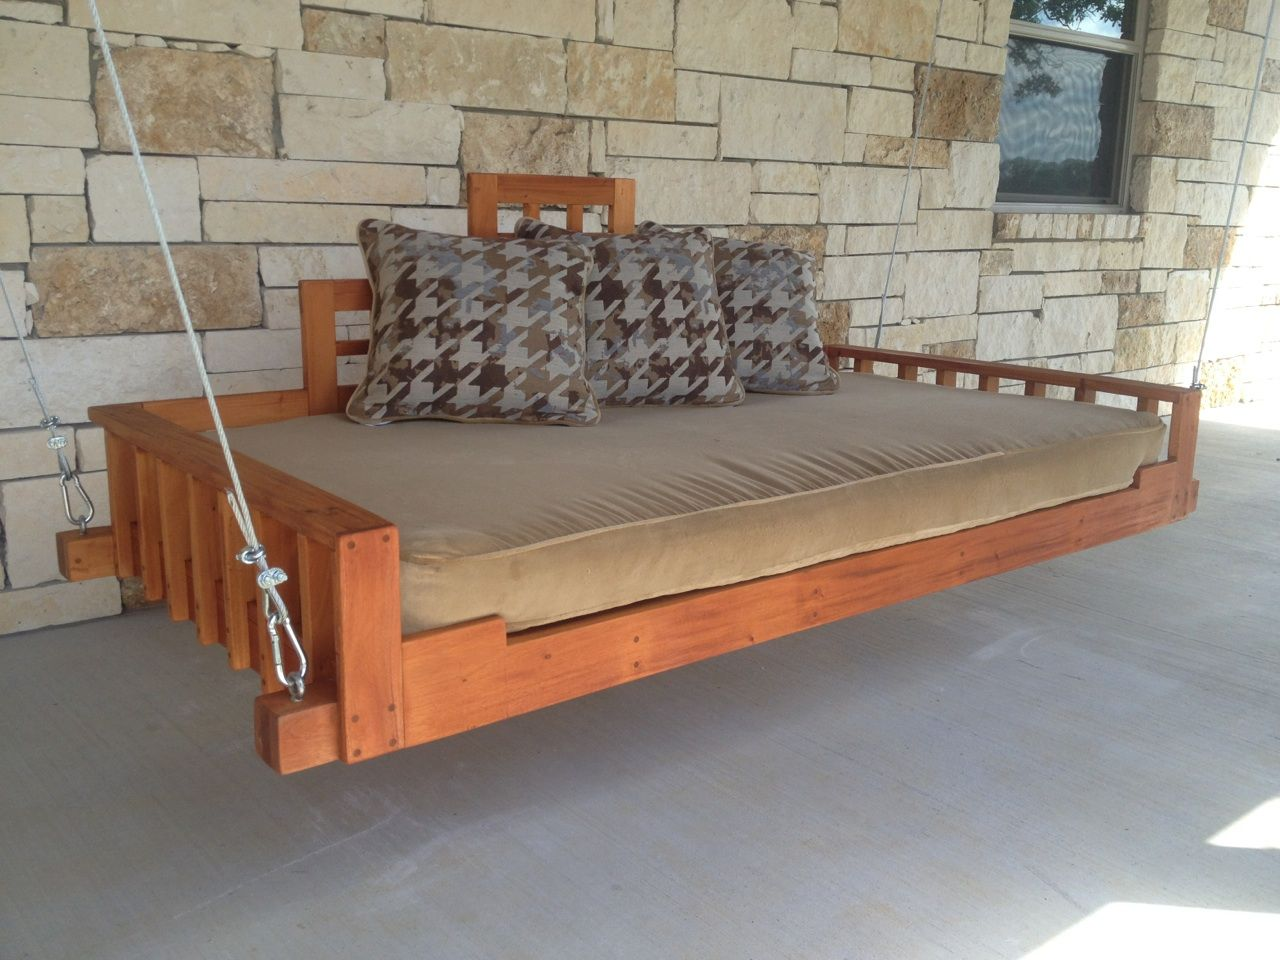 Hand Crafted Outdoor Patio Swing Bed Or Hanging Day Bed By Industrial Envy Llc Custommade Com